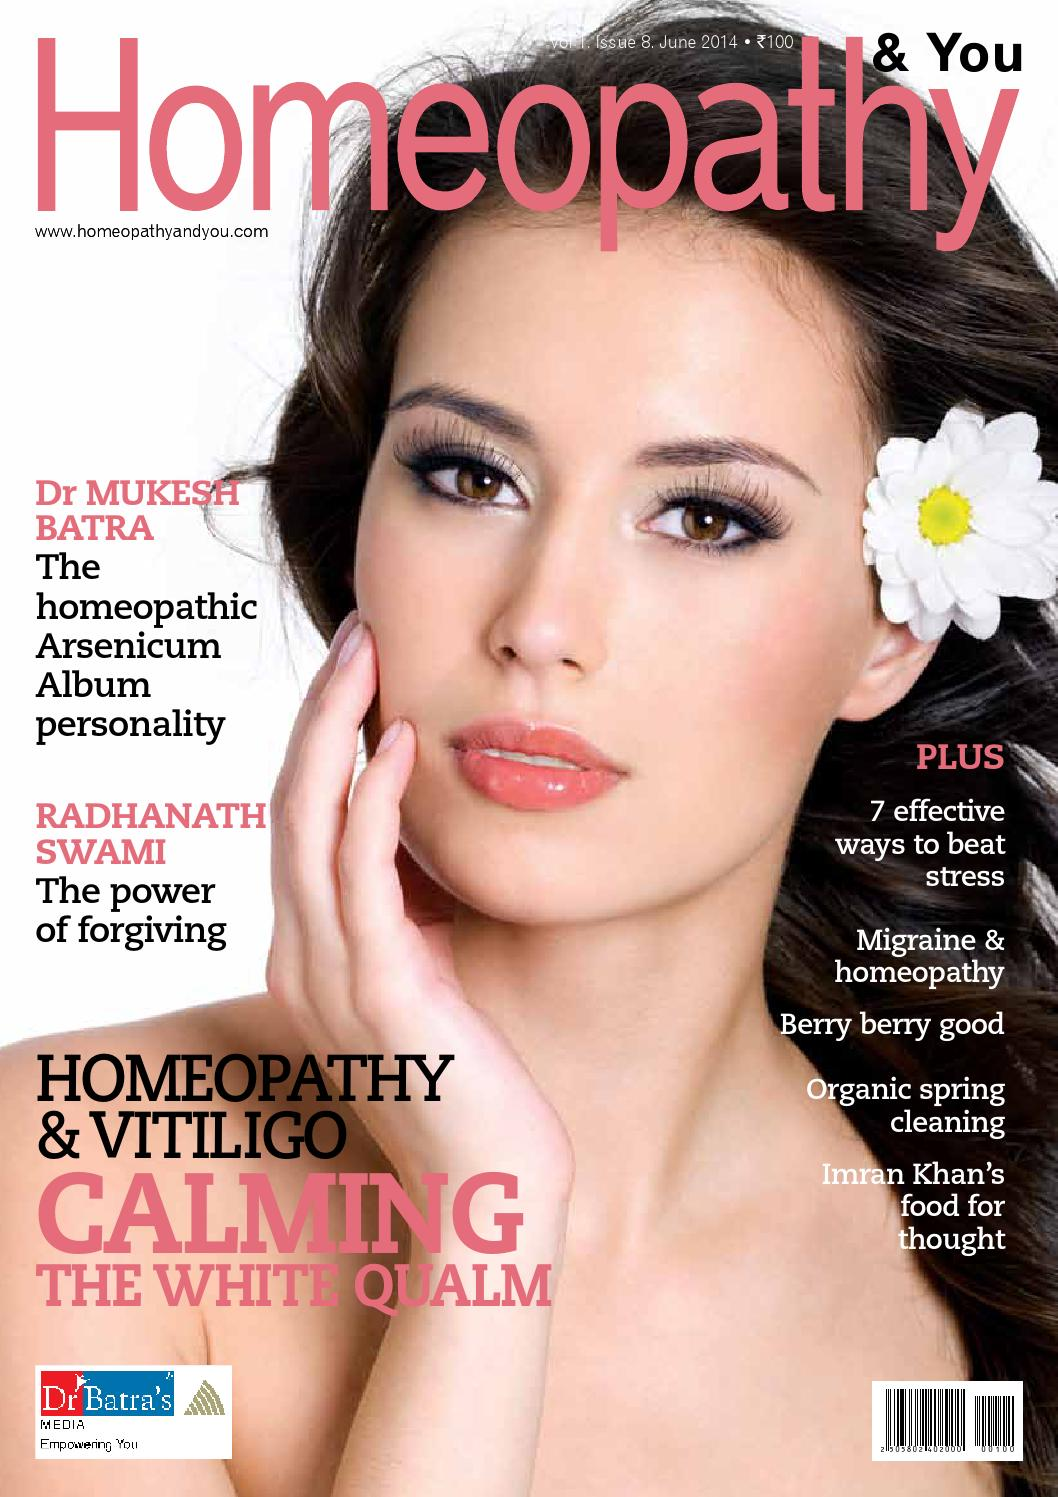 Homeopathy & you June 2014 by Dr  Batras Media Pvt  Ltd  - issuu